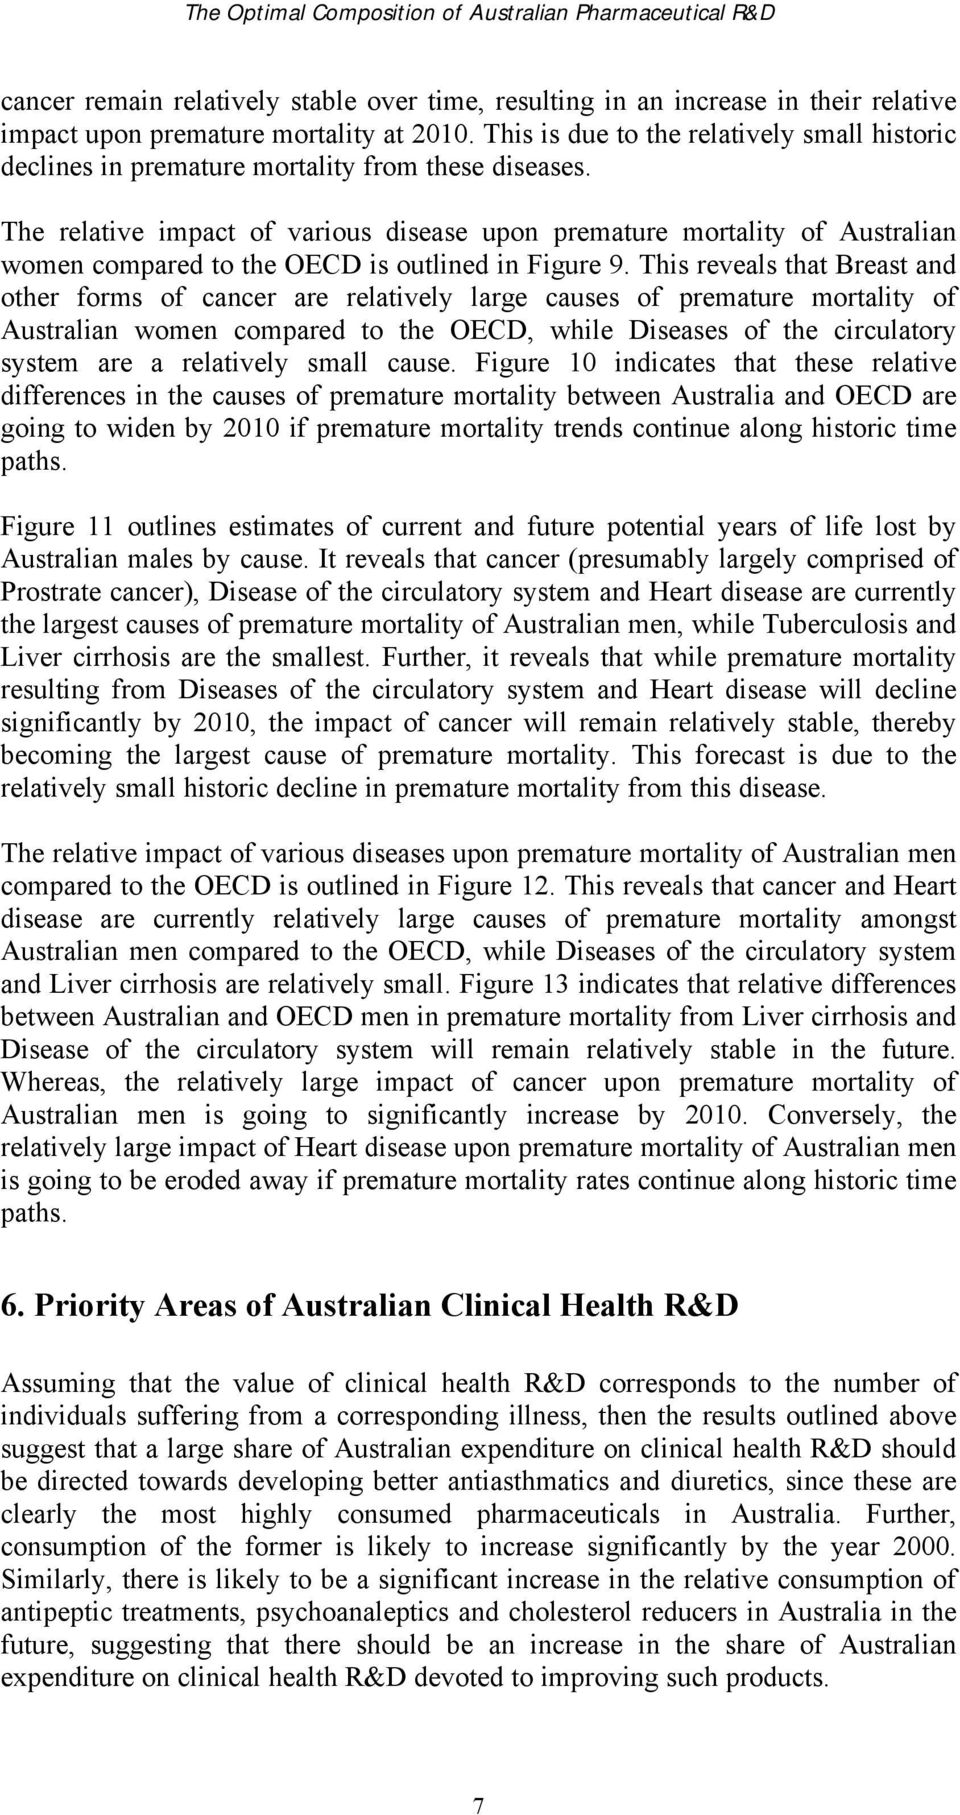 The relative impact of various disease upon premature mortality of Australian women compared to the OECD is outlined in Figure 9.